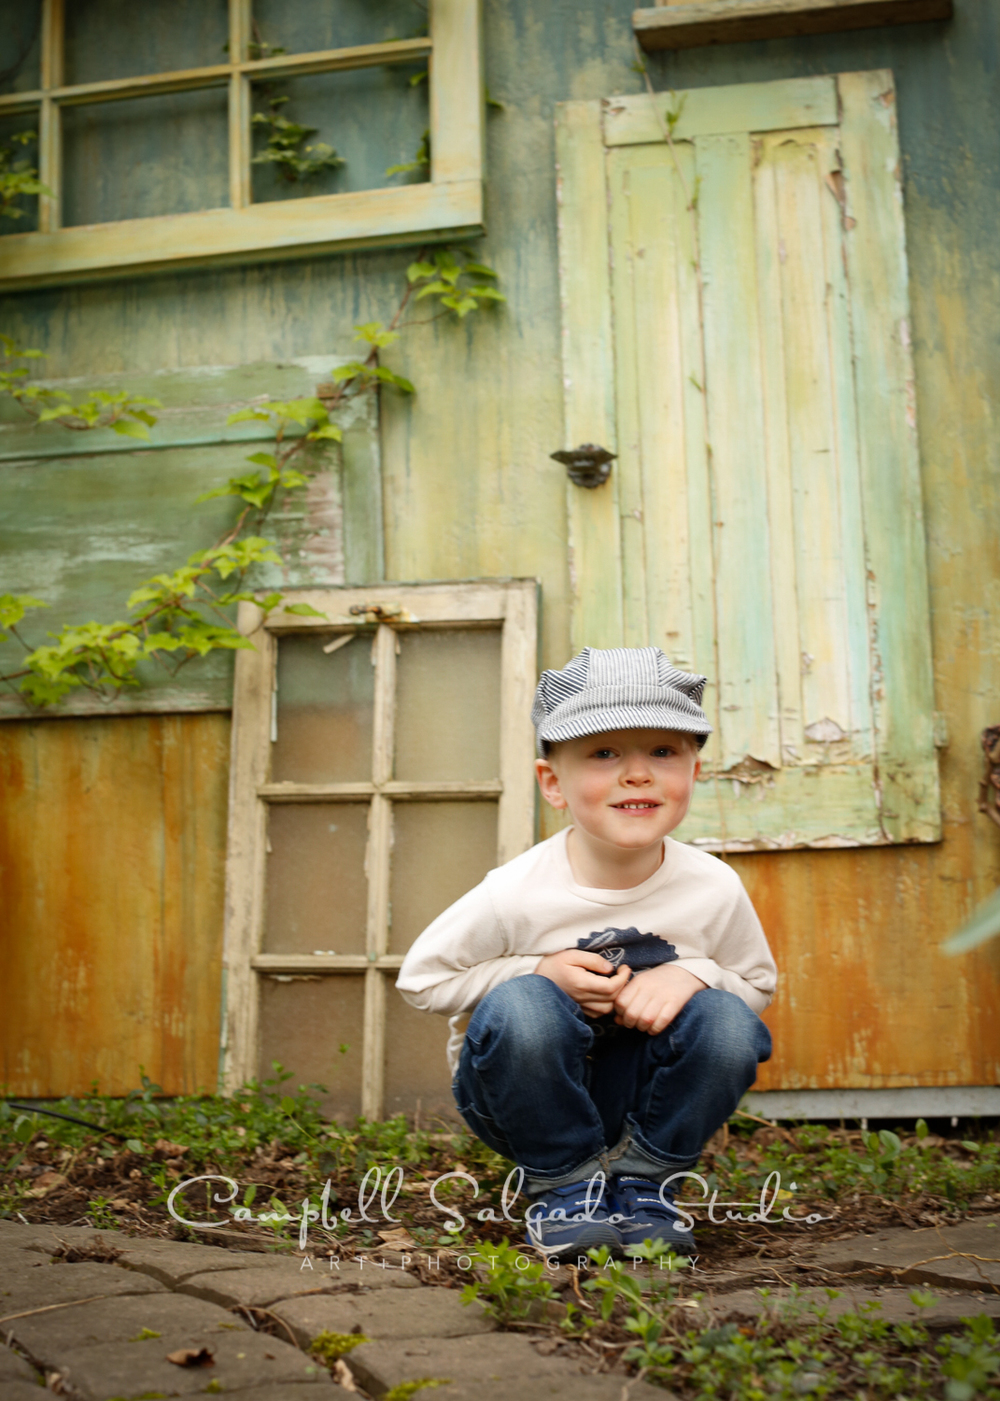 Portrait of child on vintage green doors background by childrens photographers at Campbell Salgado Studio, Portland, Oregon.